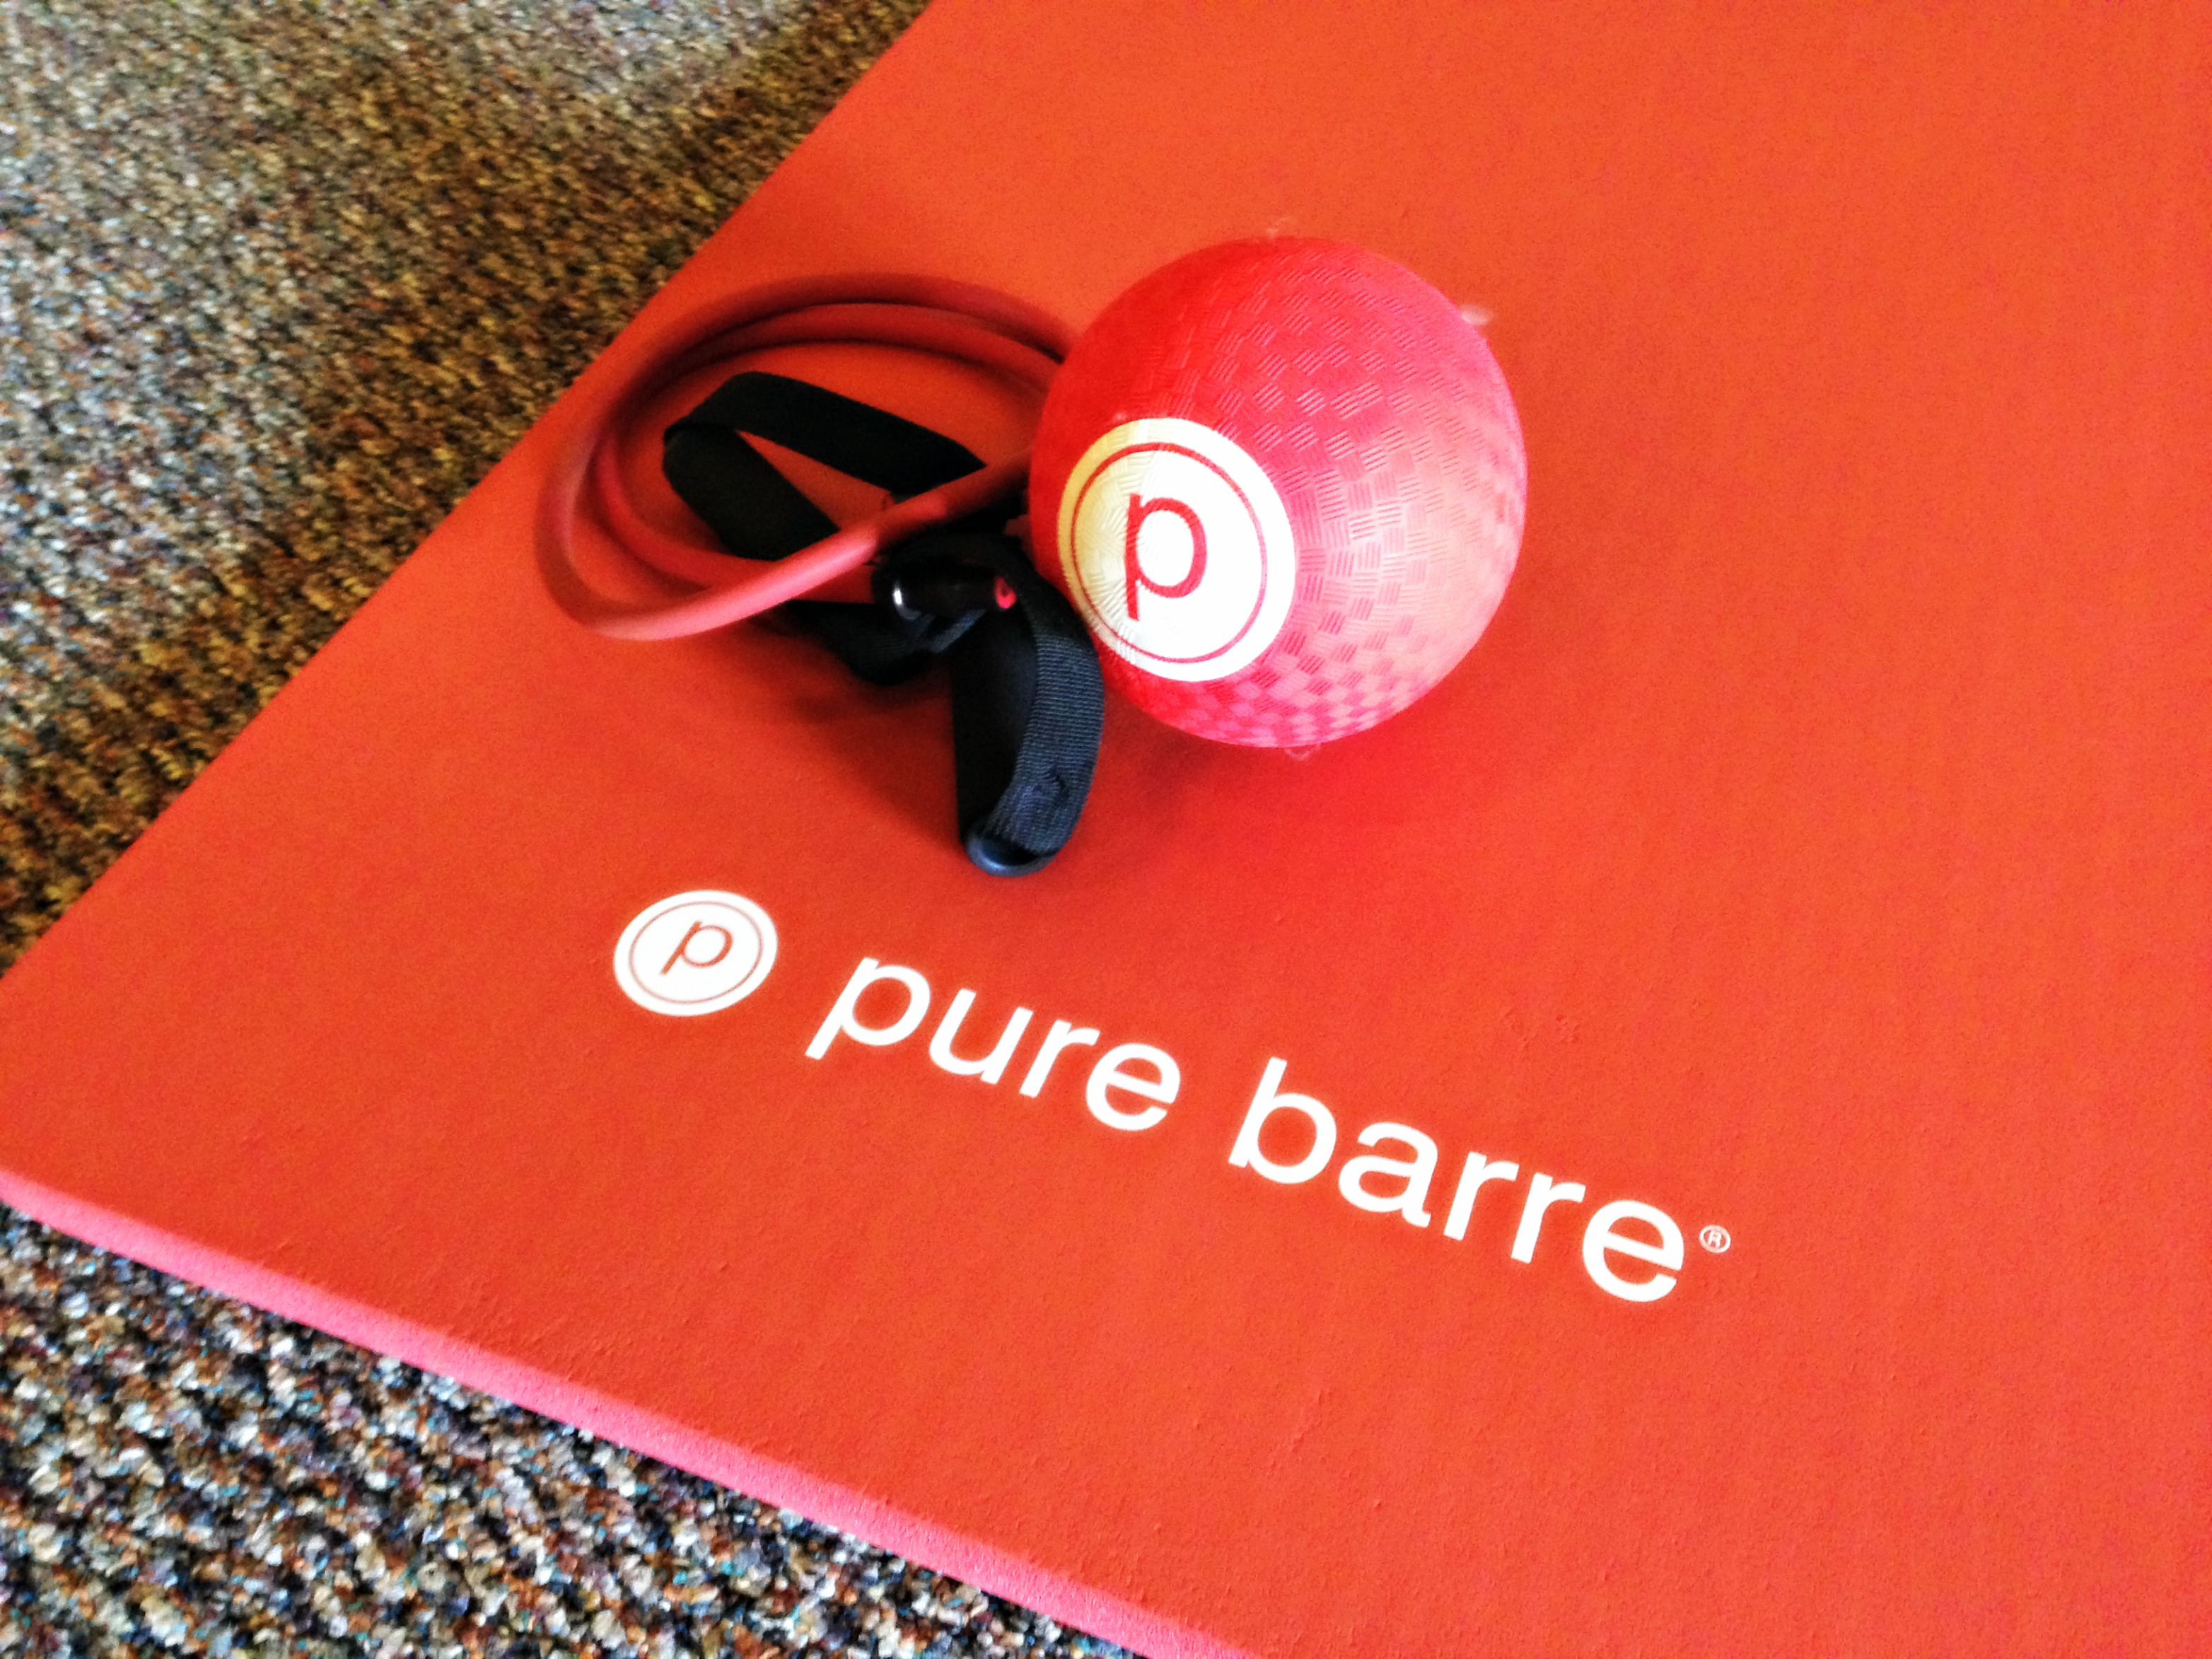 Class review: Pure Barre offers some burn